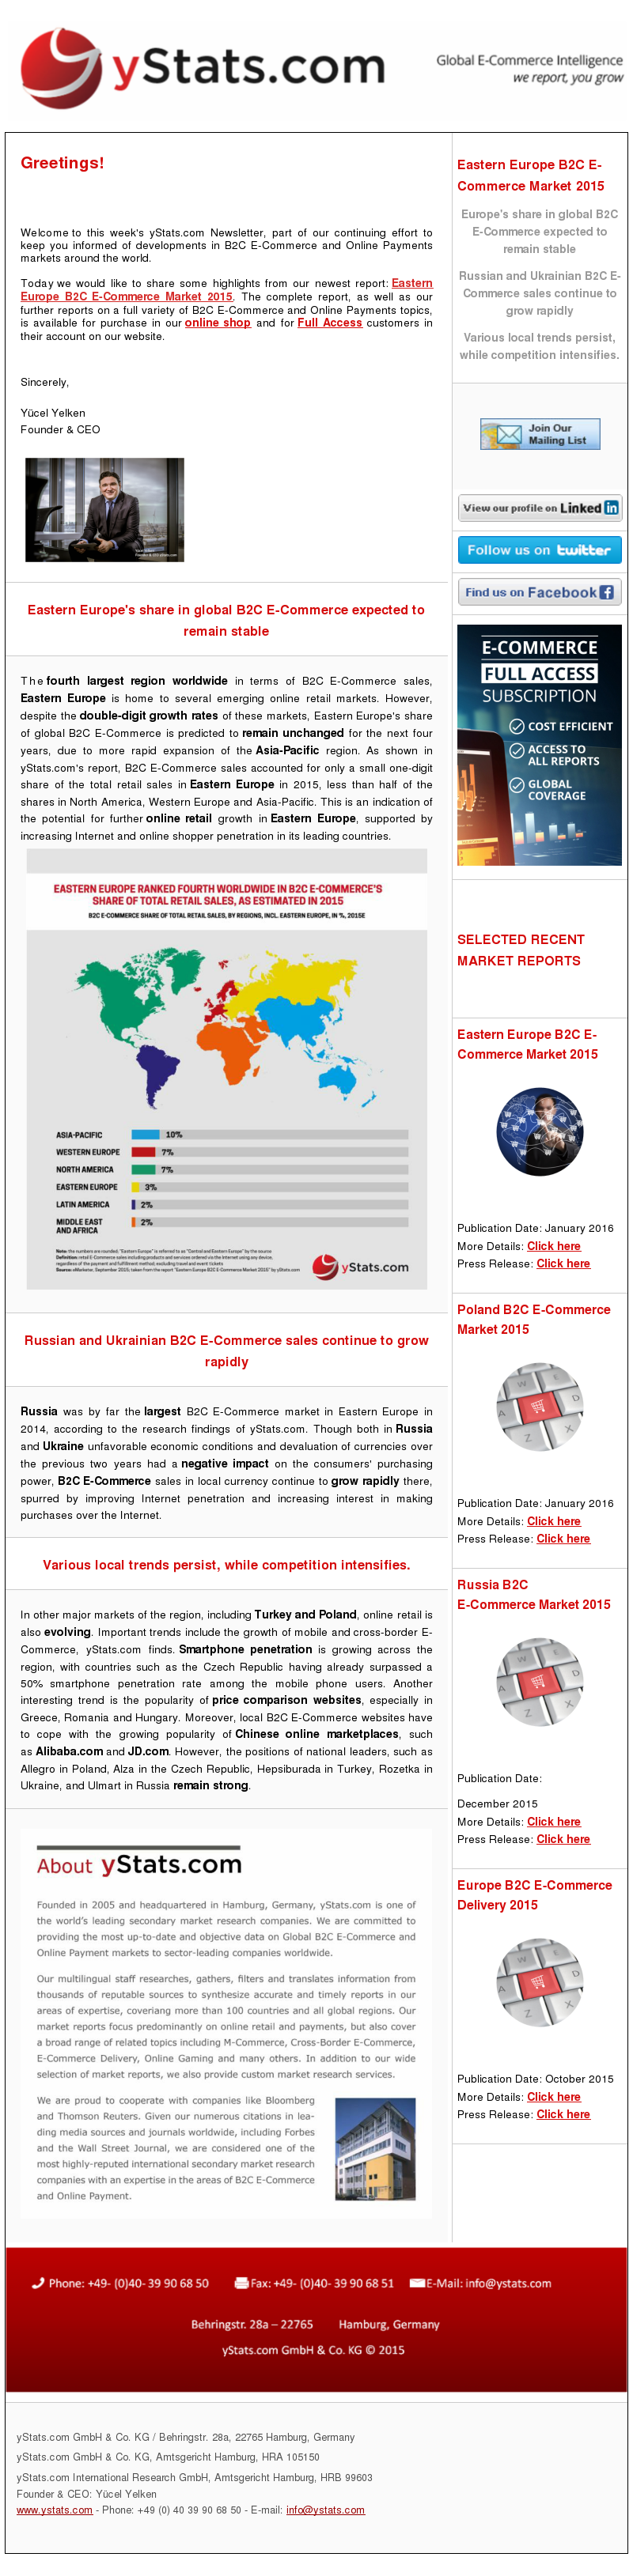 The fourth largest region worldwide in terms of B2C E-Commerce sales, Eastern Europe is home to several emerging online retail markets. However, despite the double-digit growth rates of these markets, Eastern Europe's share of global B2C E-Commerce is predicted to remain unchanged for the next four years, due to more rapid expansion of the Asia-Pacific region. As shown in yStats.com's report, B2C E-Commerce sales accounted for only a small one-digit share of the total retail sales in Eastern Europe in 2015, less than half of the shares in North America, Western Europe and Asia-Pacific. This is an indication of the potential for further online retail growth in Eastern Europe, supported by increasing Internet and online shopper penetration in its leading countries.  Russia was by far the largest B2C E-Commerce market in Eastern Europe in 2014, according to the research findings of yStats.com. Though both in Russia and Ukraine unfavorable economic conditions and devaluation of currencies over the previous two years had a negative impact on the consumers' purchasing power, B2C E-Commerce sales in local currency continue to grow rapidly there, spurred by improving Internet penetration and increasing interest in making purchases over the Internet.  In other major markets of the region, including Turkey and Poland, online retail is also evolving. Important trends include the growth of mobile and cross-border E-Commerce, yStats.com finds. Smartphone penetration is growing across the region, with countries such as the Czech Republic having already surpassed a 50% smartphone penetration rate among the mobile phone users. Another interesting trend is the popularity of price comparison websites, especially in Greece, Romania and Hungary. Moreover, local B2C E-Commerce websites have to cope with the growing popularity of Chinese online marketplaces, such as Alibaba.com and JD.com. However, the positions of national leaders, such as  Allegro in Poland, Alza in the Czech Republic,